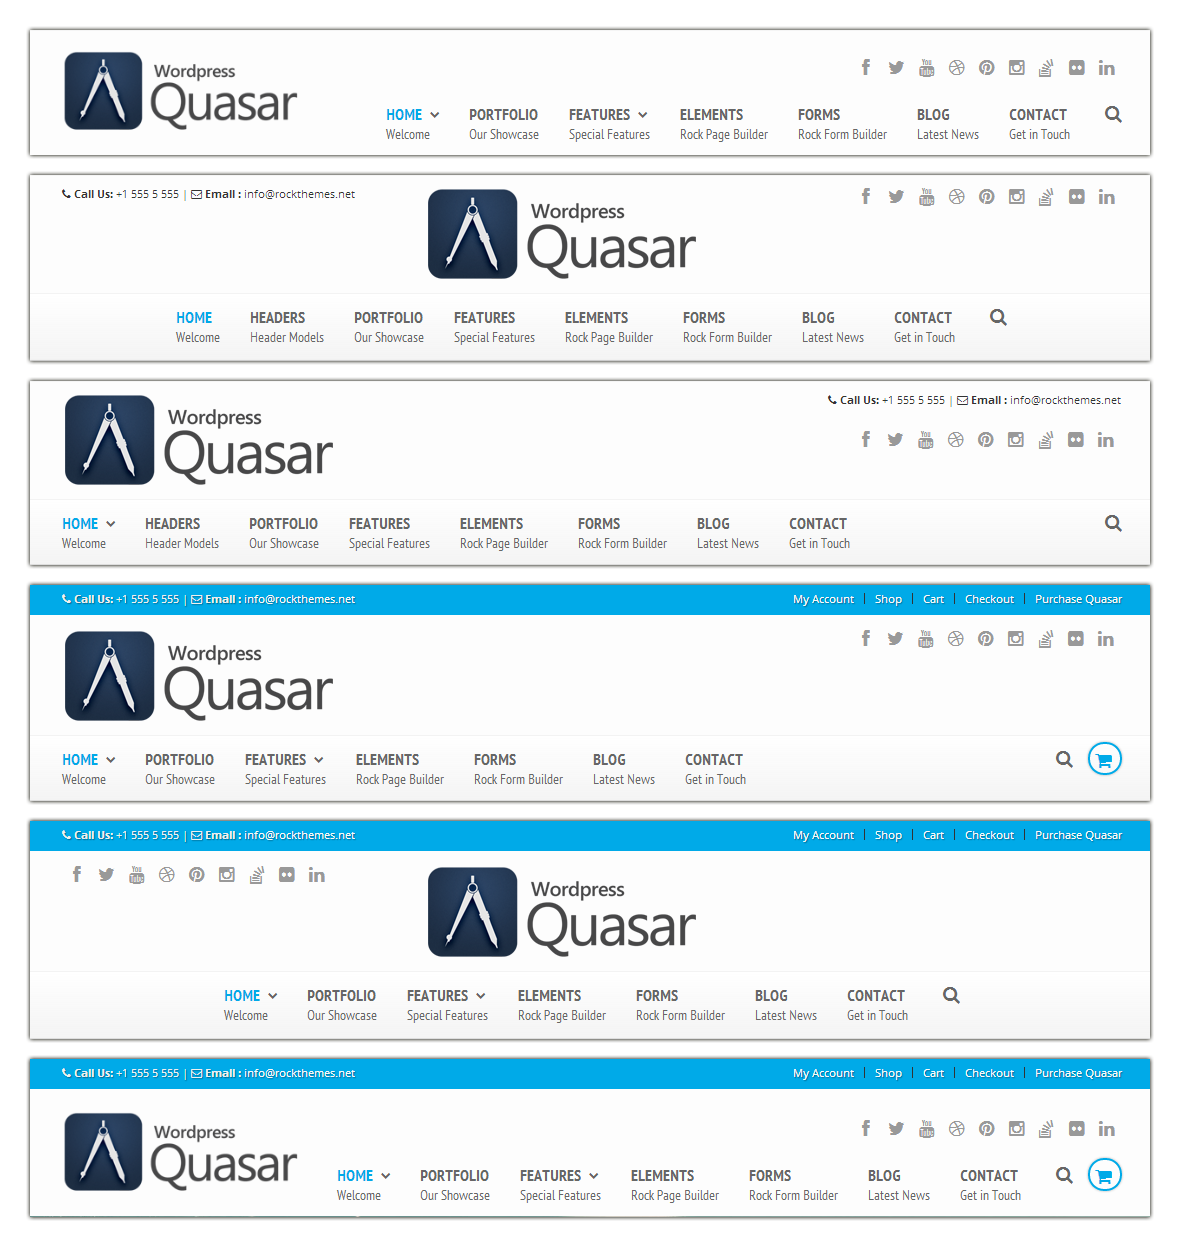 Quasar Header Models